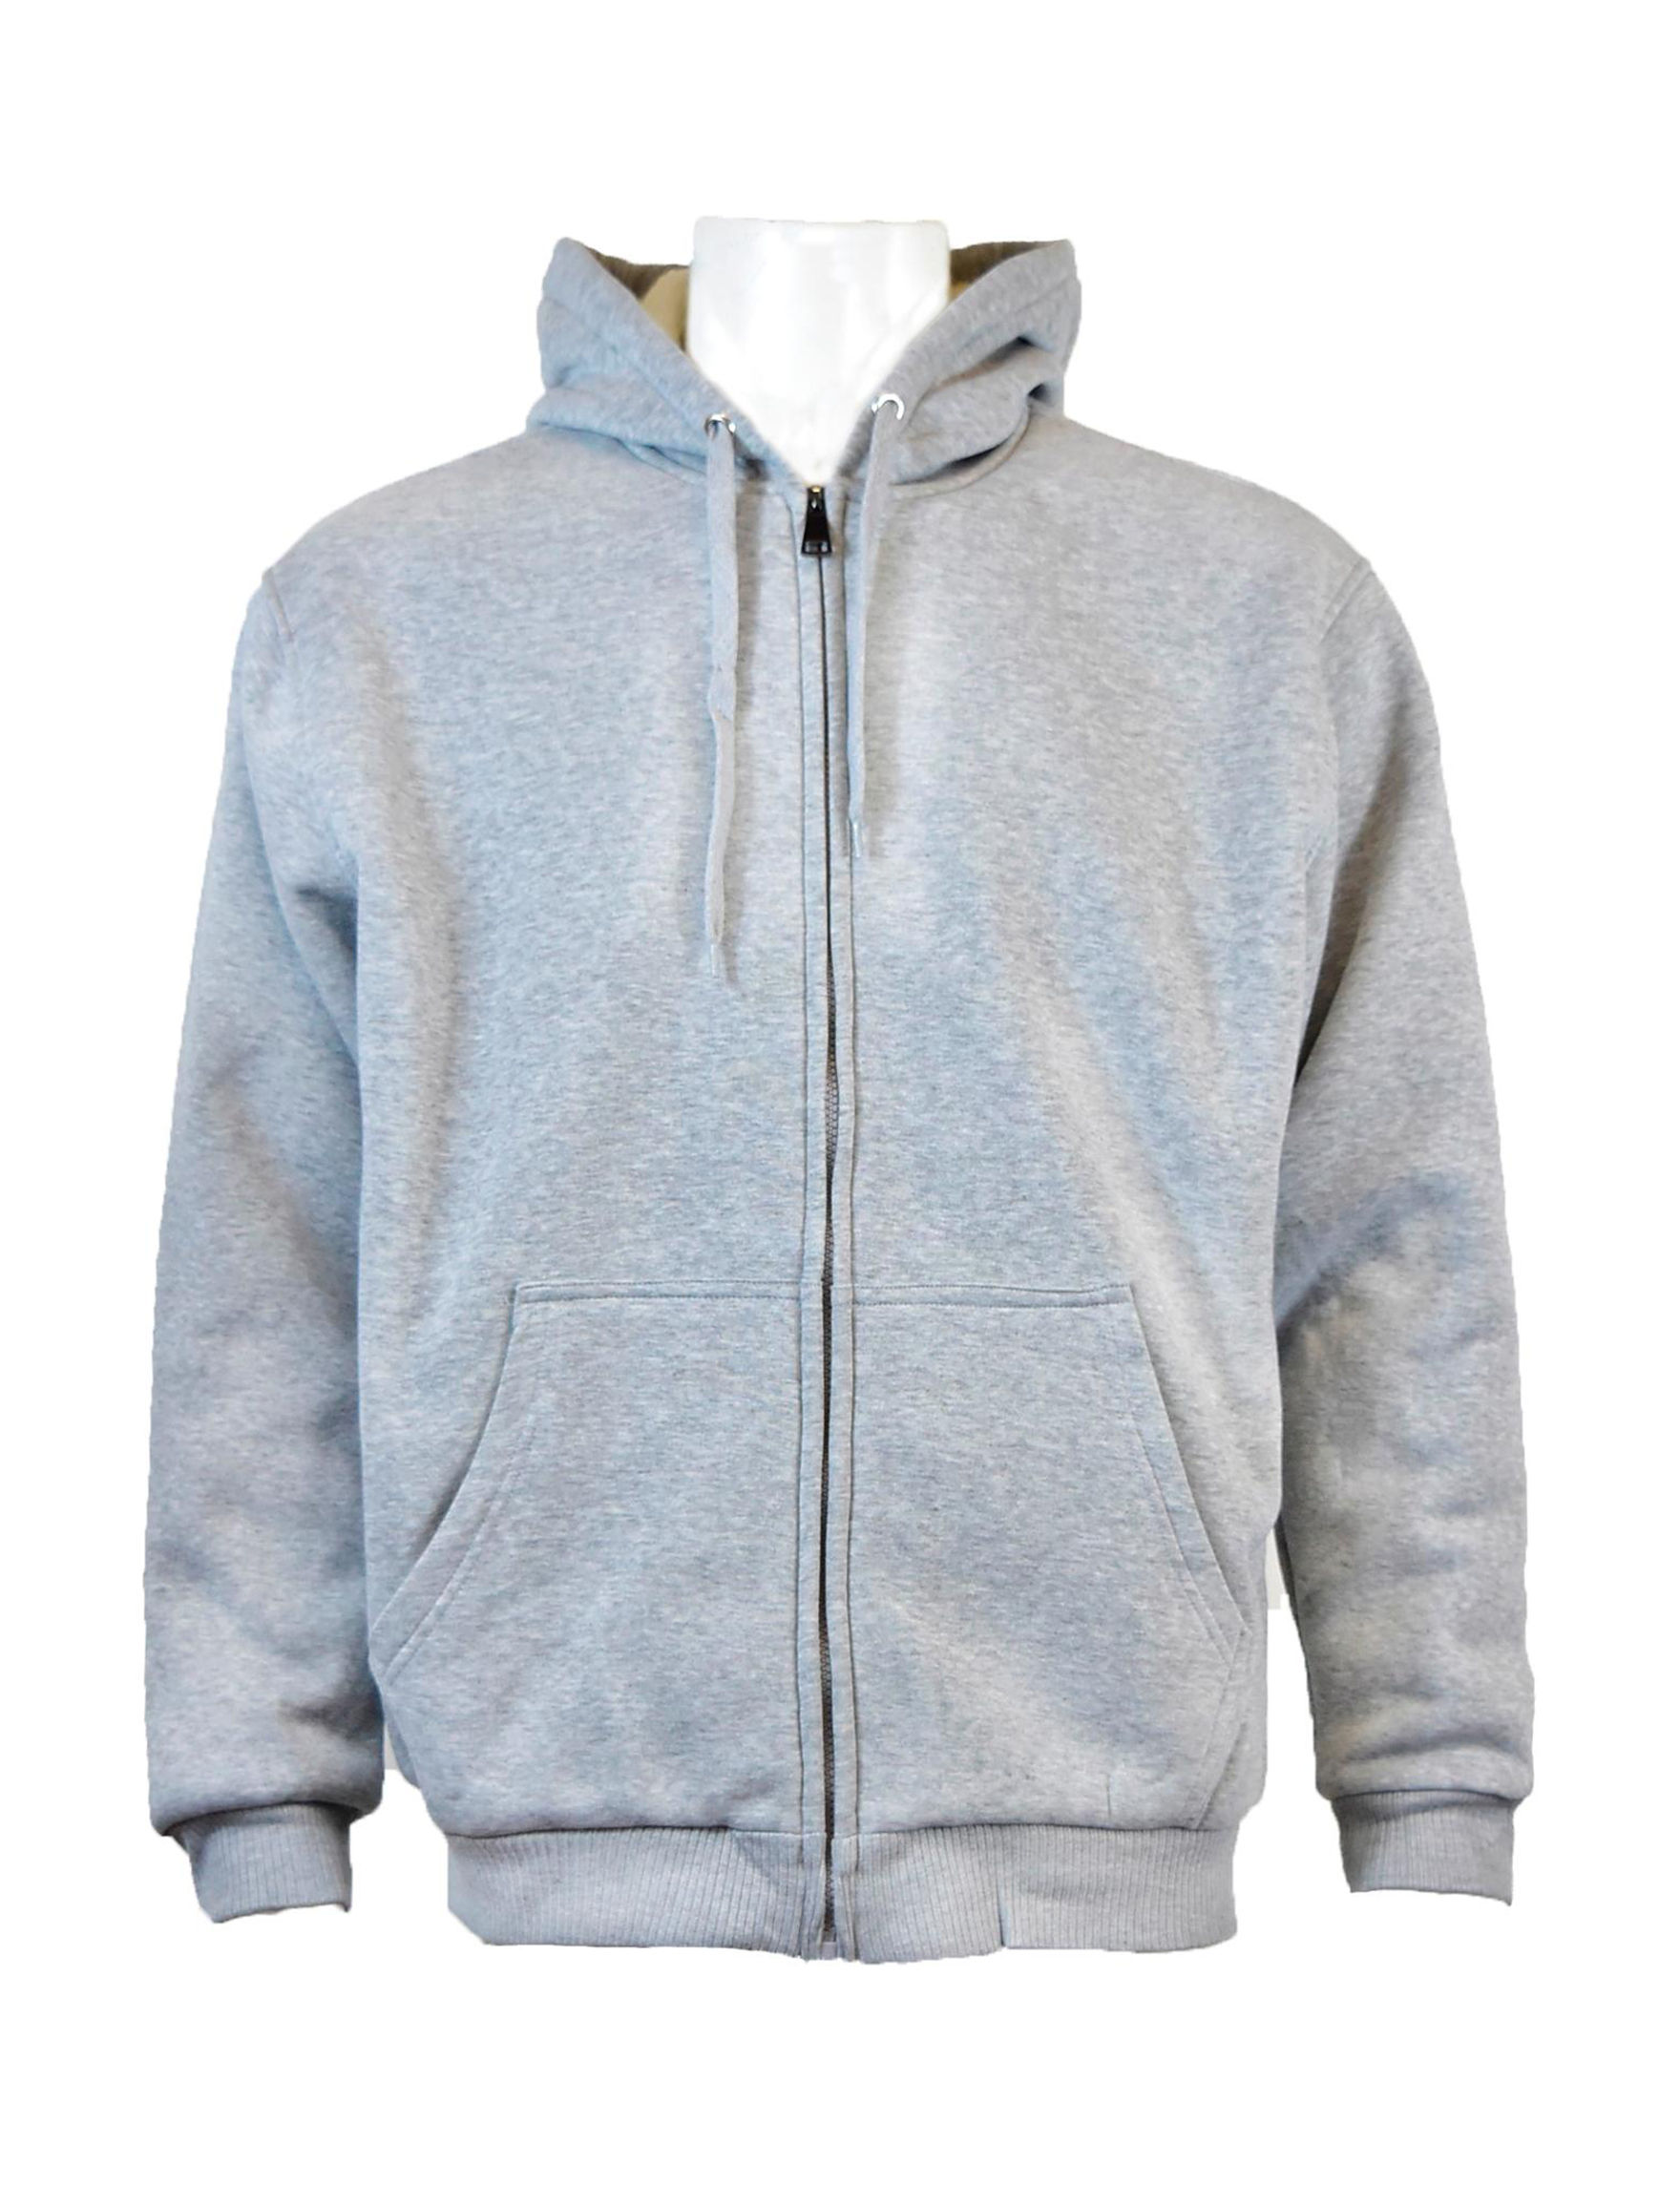 Victory Outfitters Grey Fleece & Soft Shell Jackets